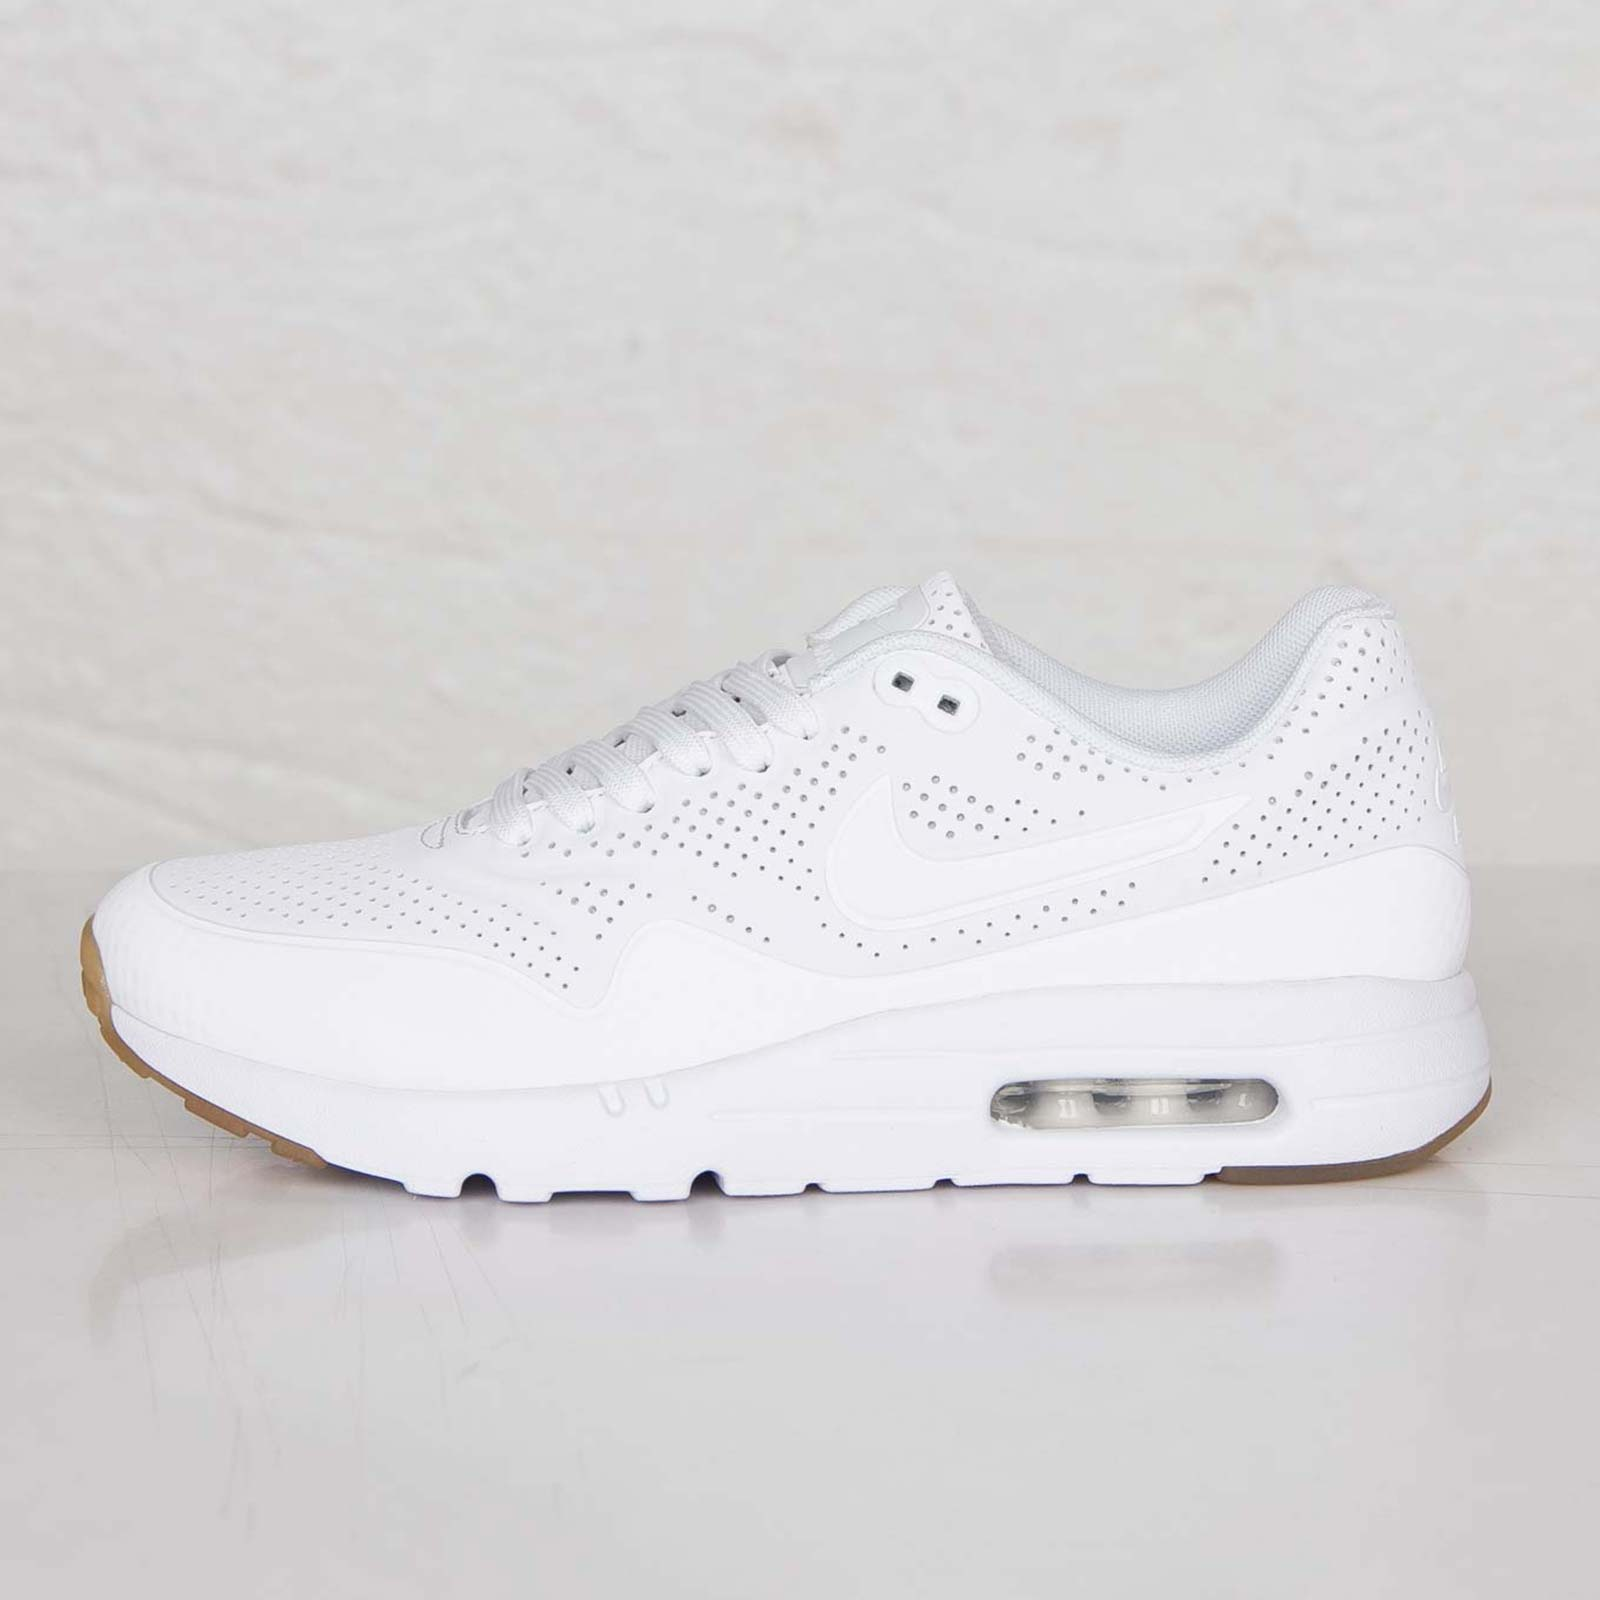 the latest 8aa74 b9d34 Nike Air Max 1 Ultra Moire - 705297-111 - Sneakersnstuff   sneakers    streetwear online since 1999